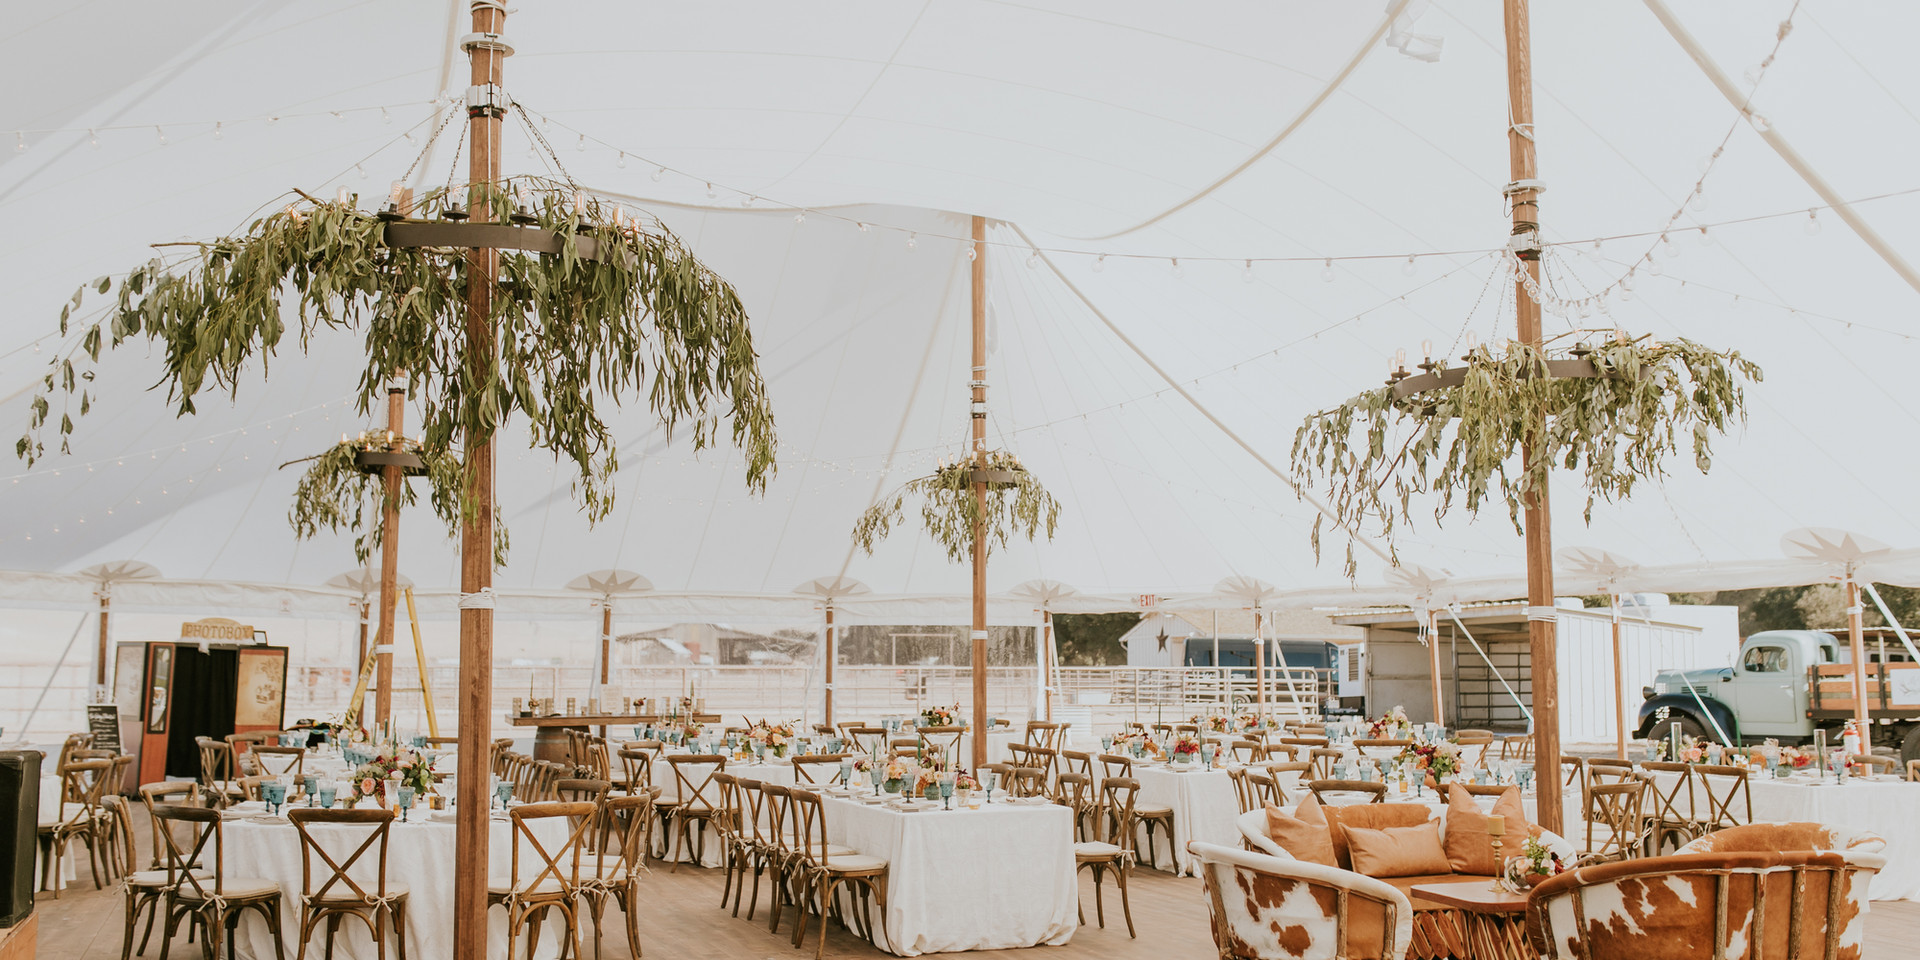 Christian Oth Studios|Chic Events-Early American Barn